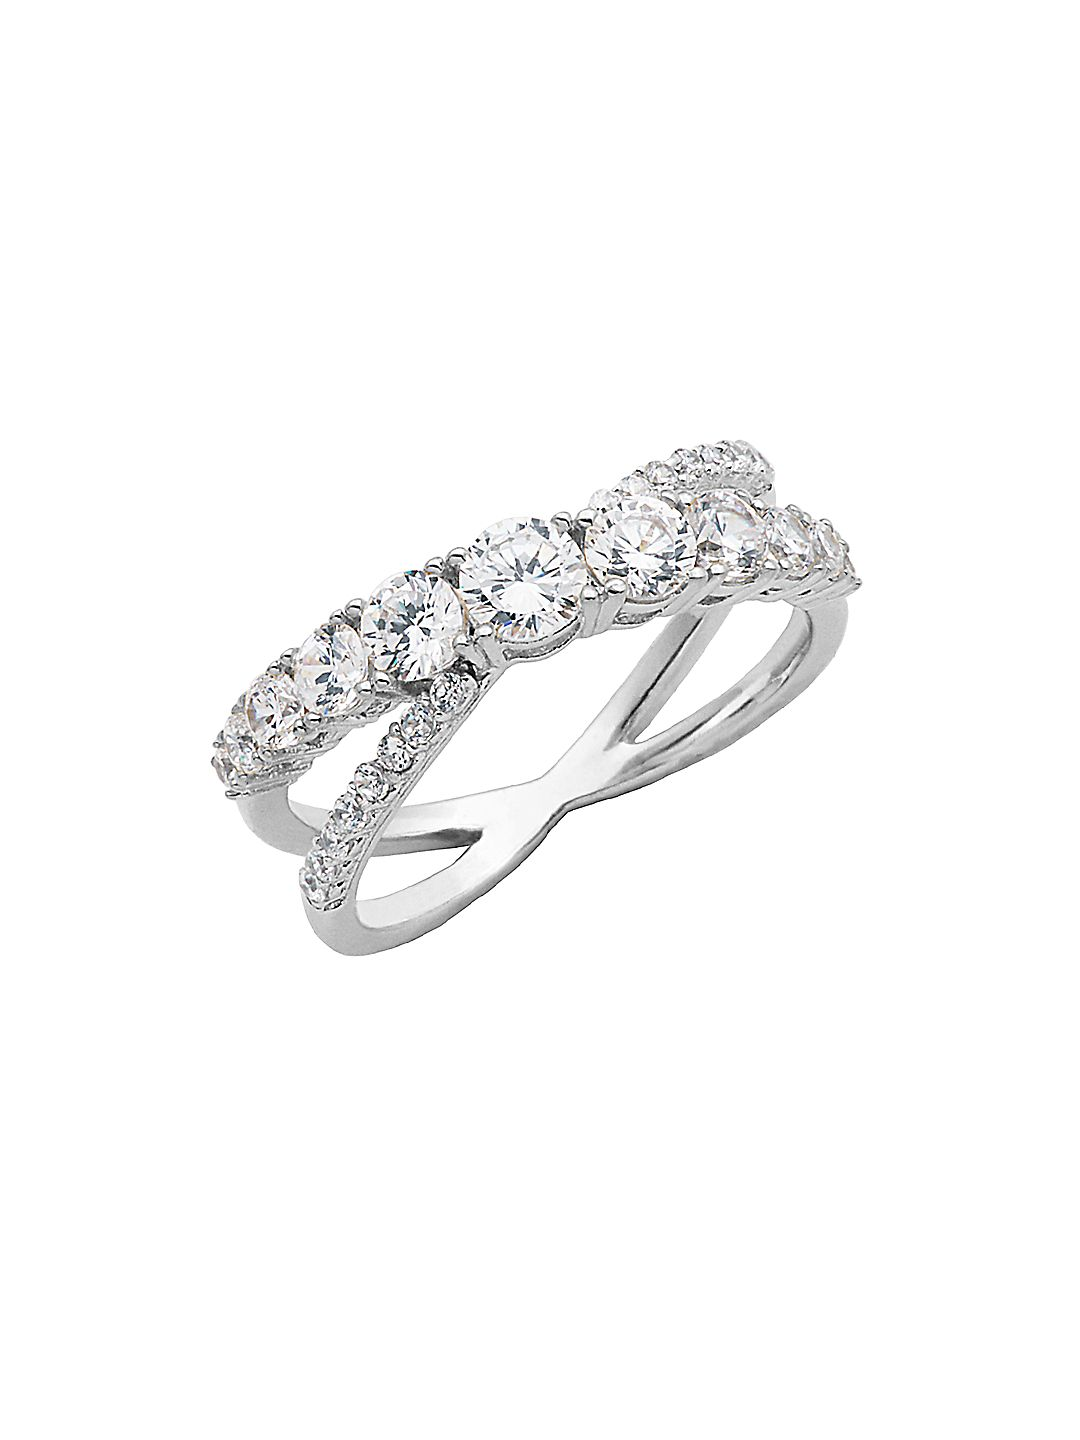 Sterling Silver and Cubic Zirconia Interlocking Ring